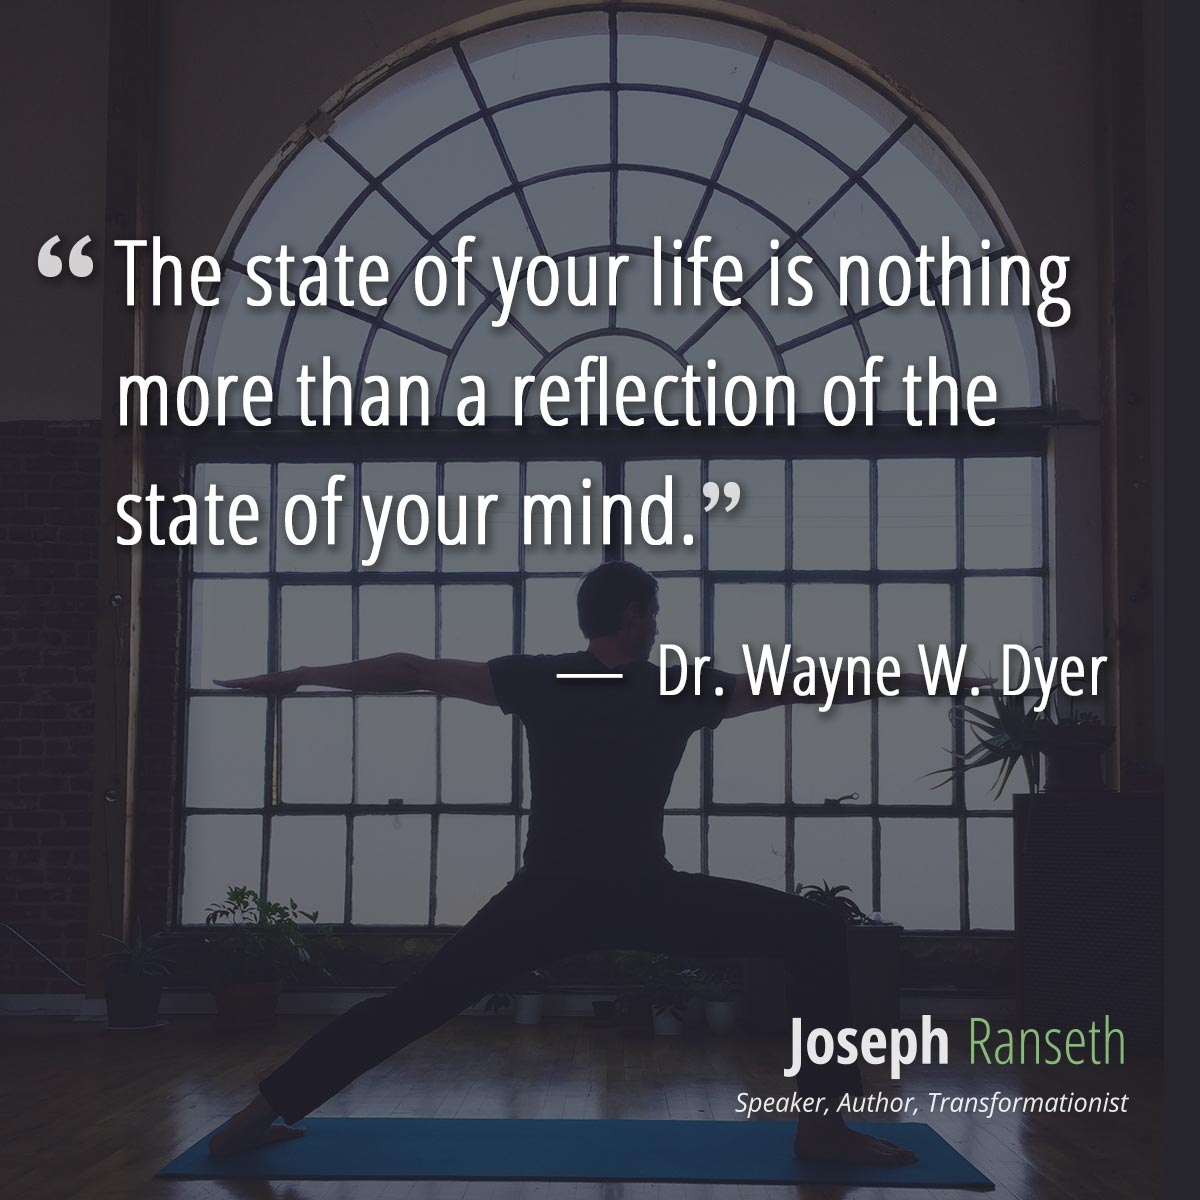 The state of your life is nothing more than a reflection of the state of your mind